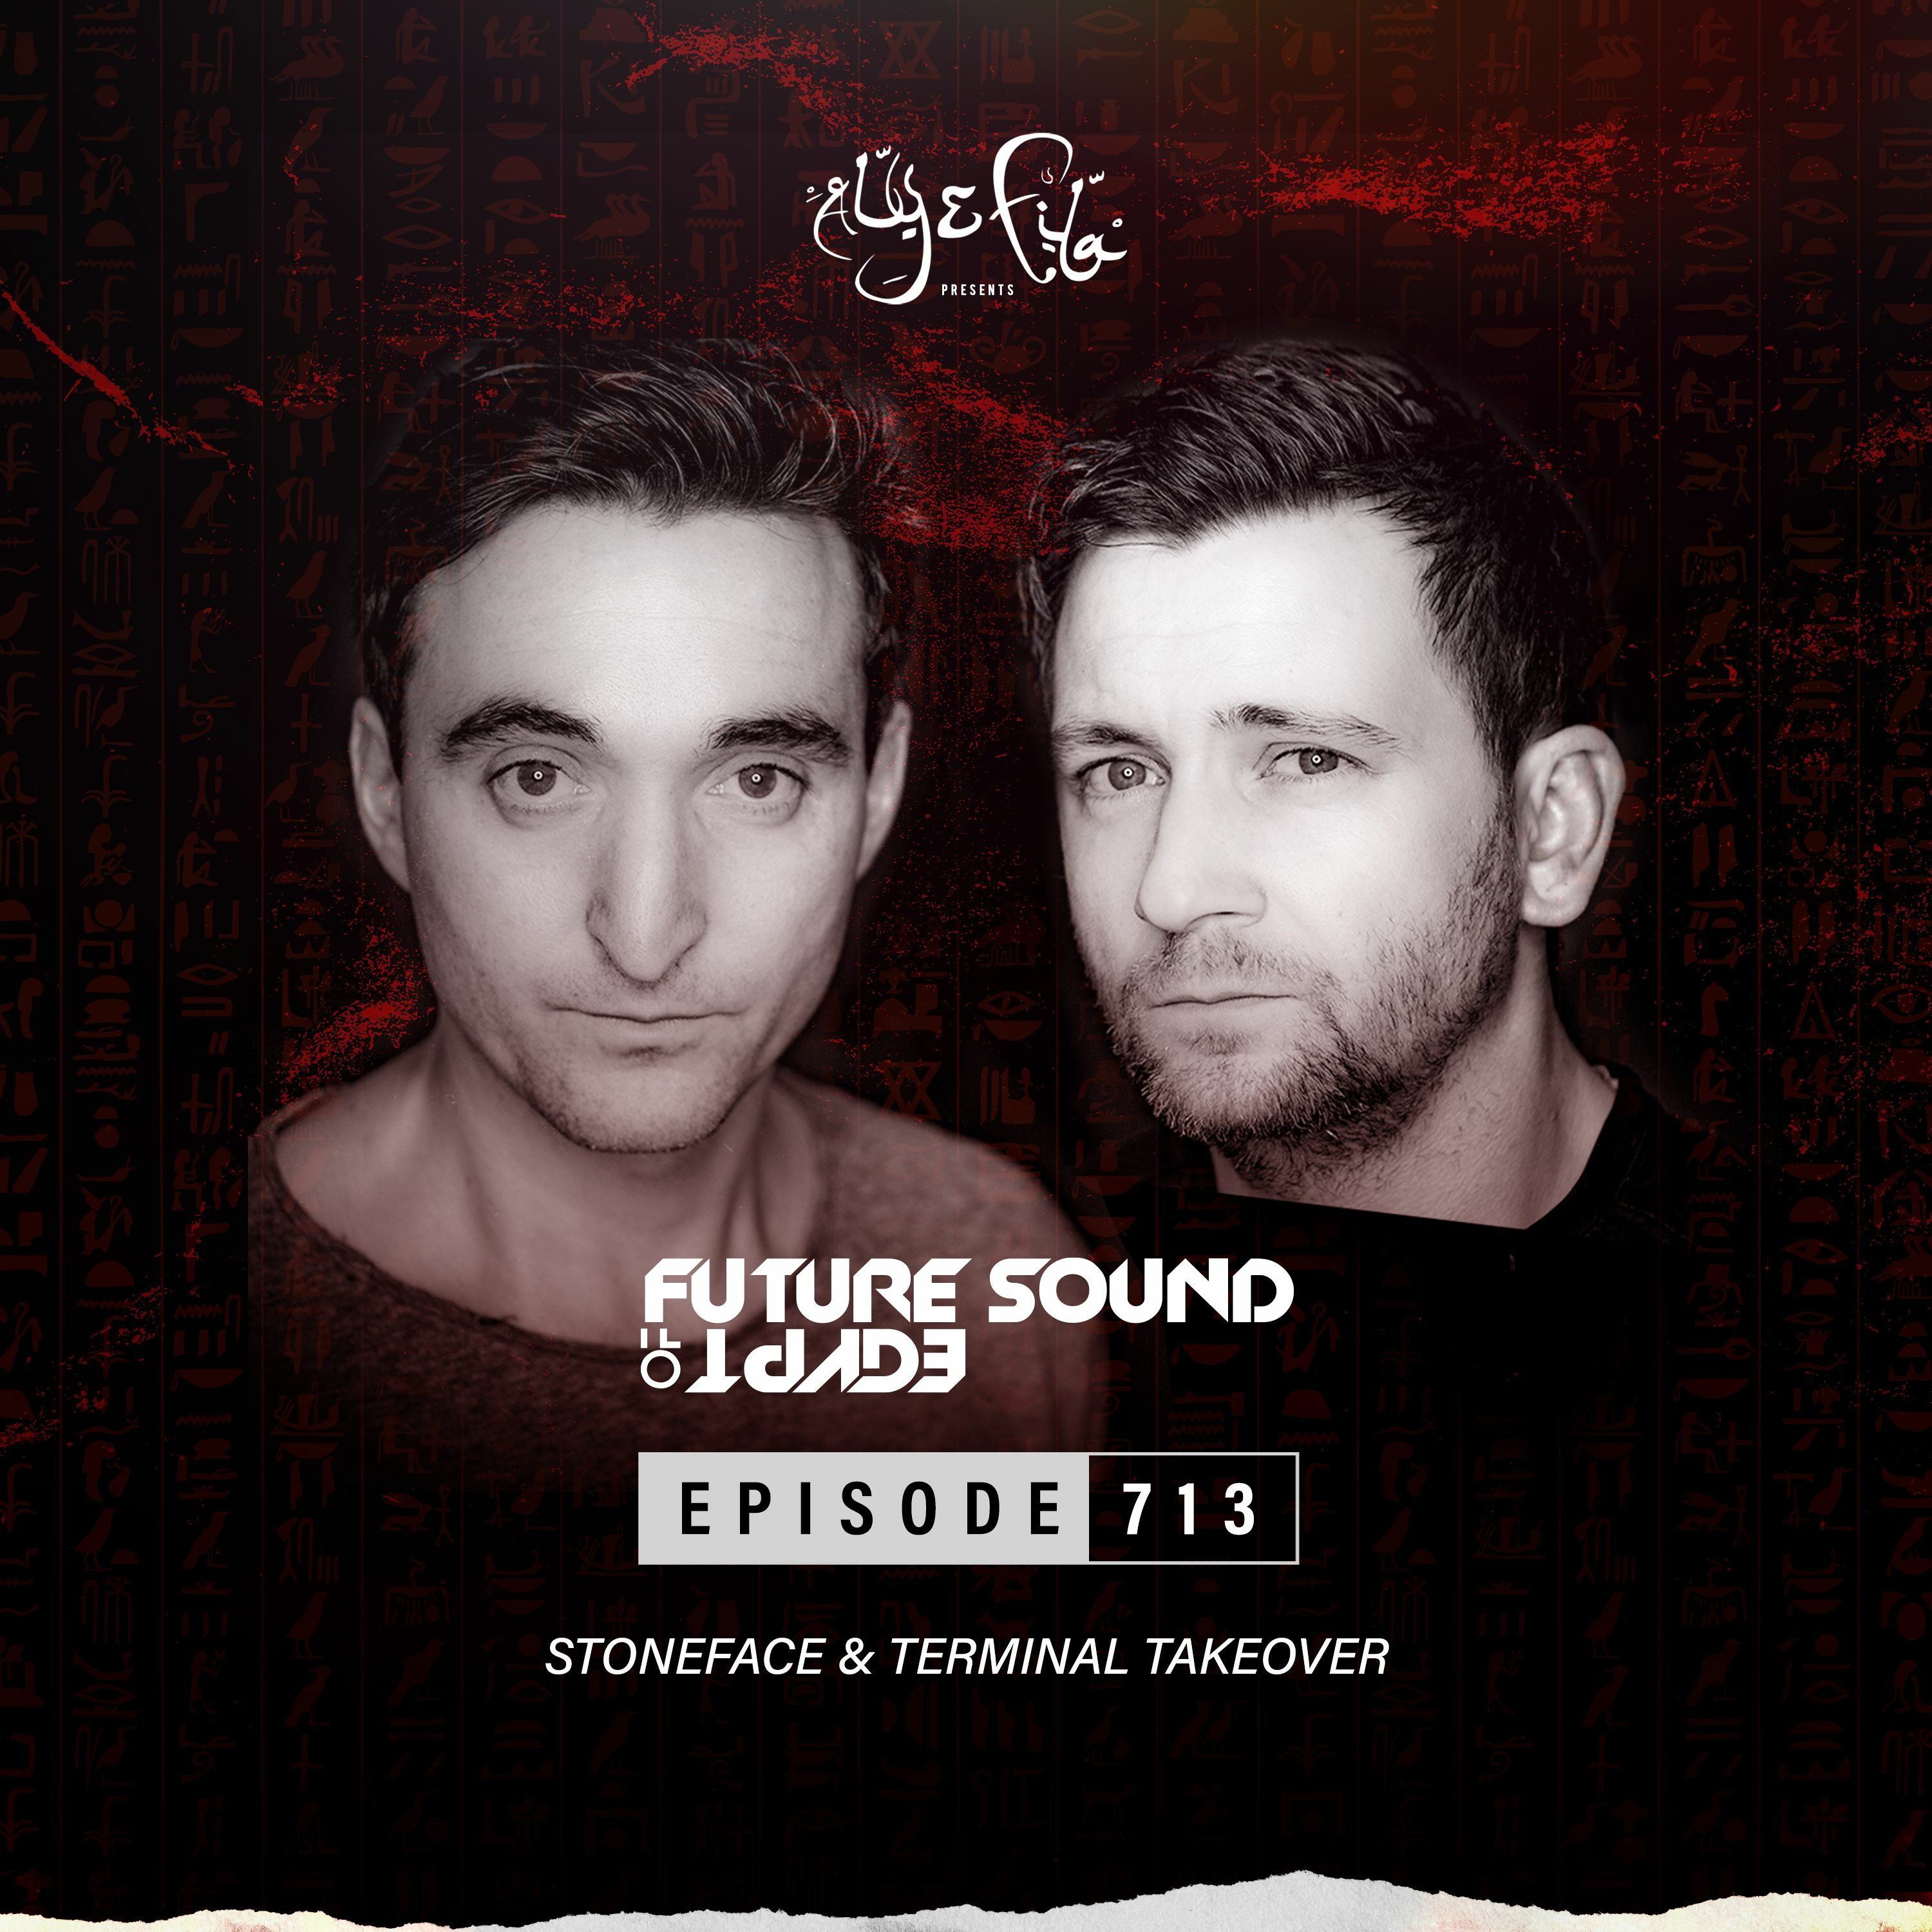 Future Sound of Egypt 713 with Aly & Fila (Stoneface & Terminal Takeover)